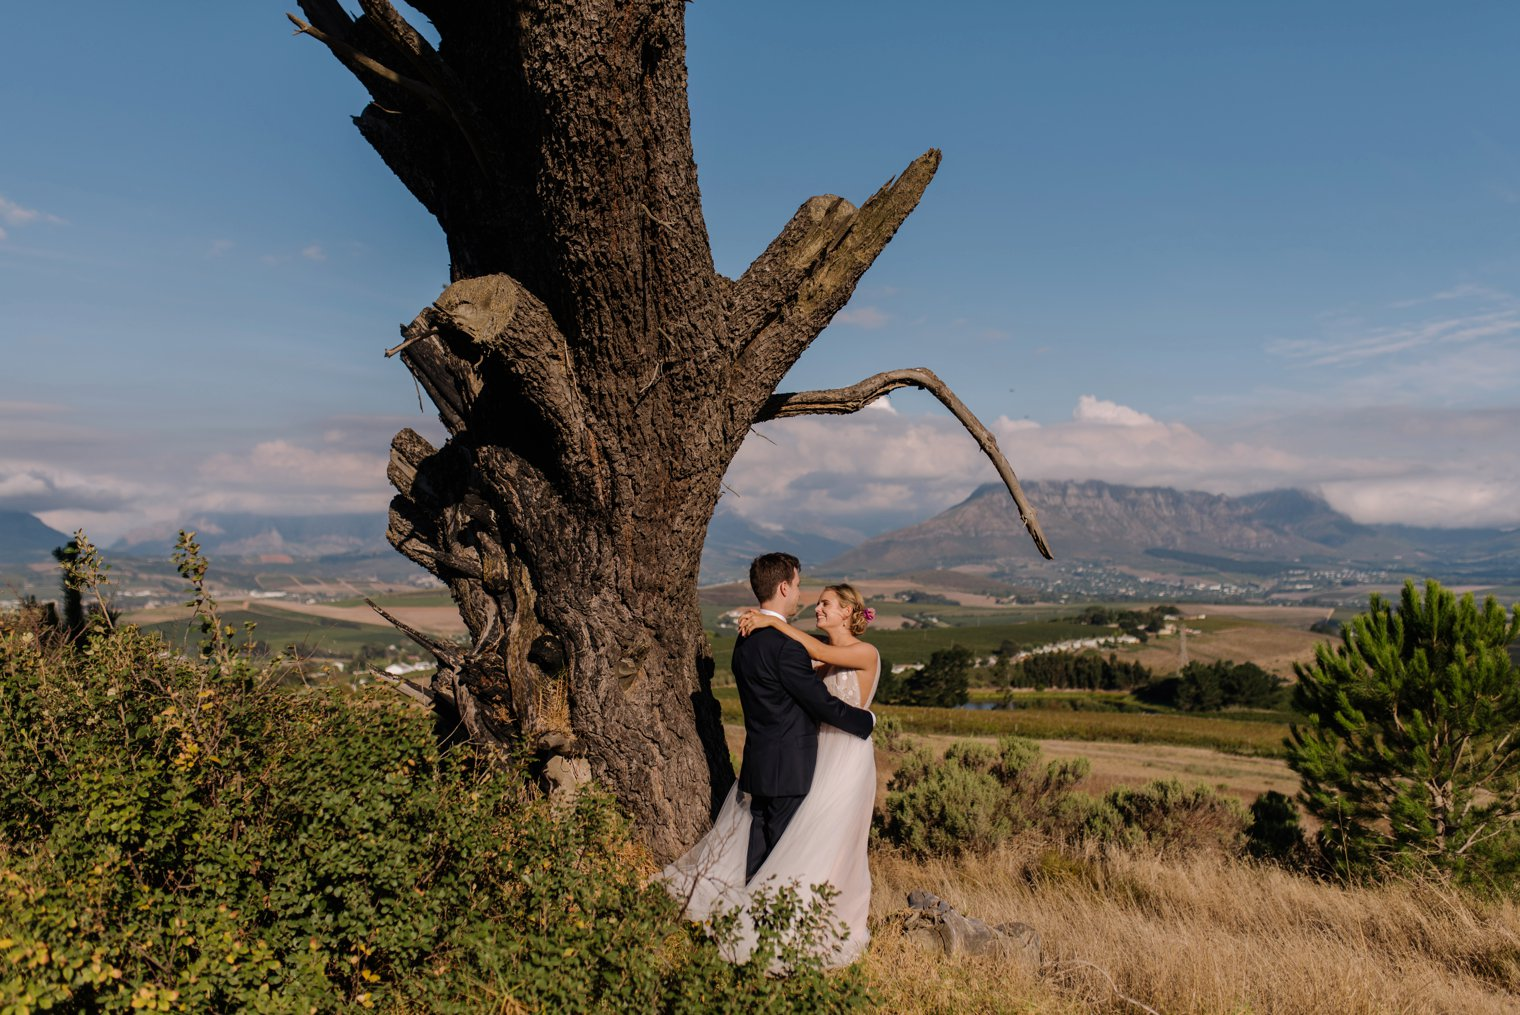 wedding photos at landtscap in stellenbosch